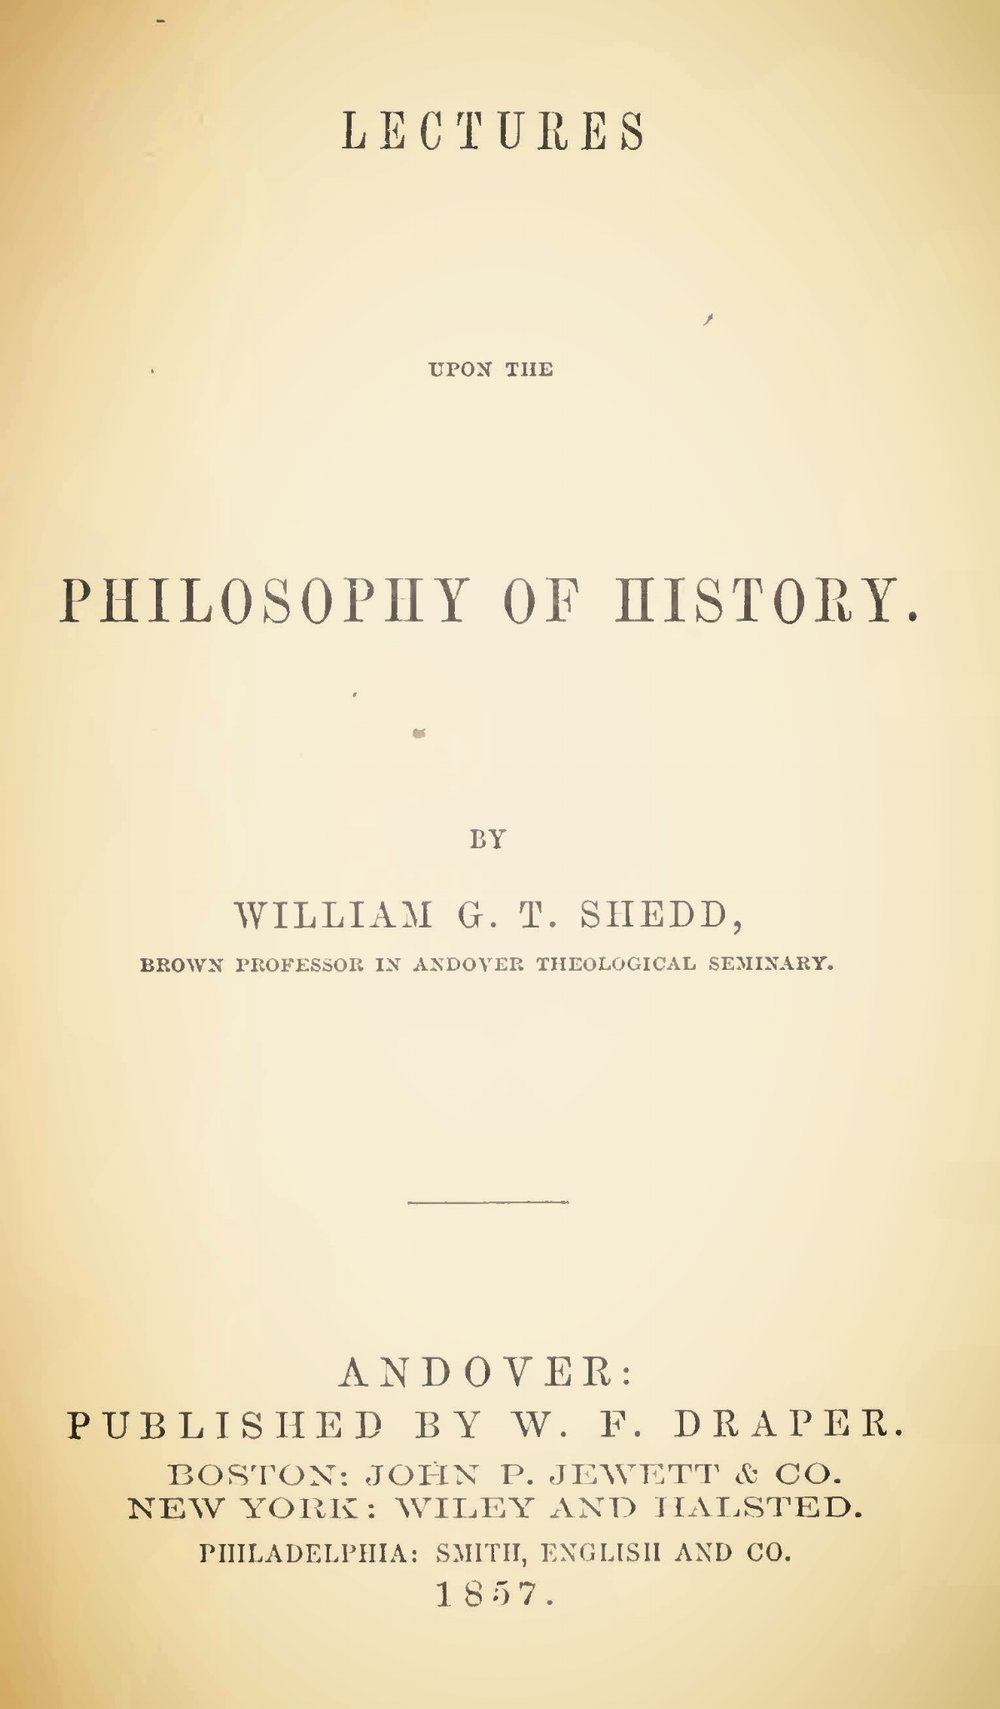 Shedd, William Greenough Thayer, Lectures Upon the Philosophy of History Title Page.jpg